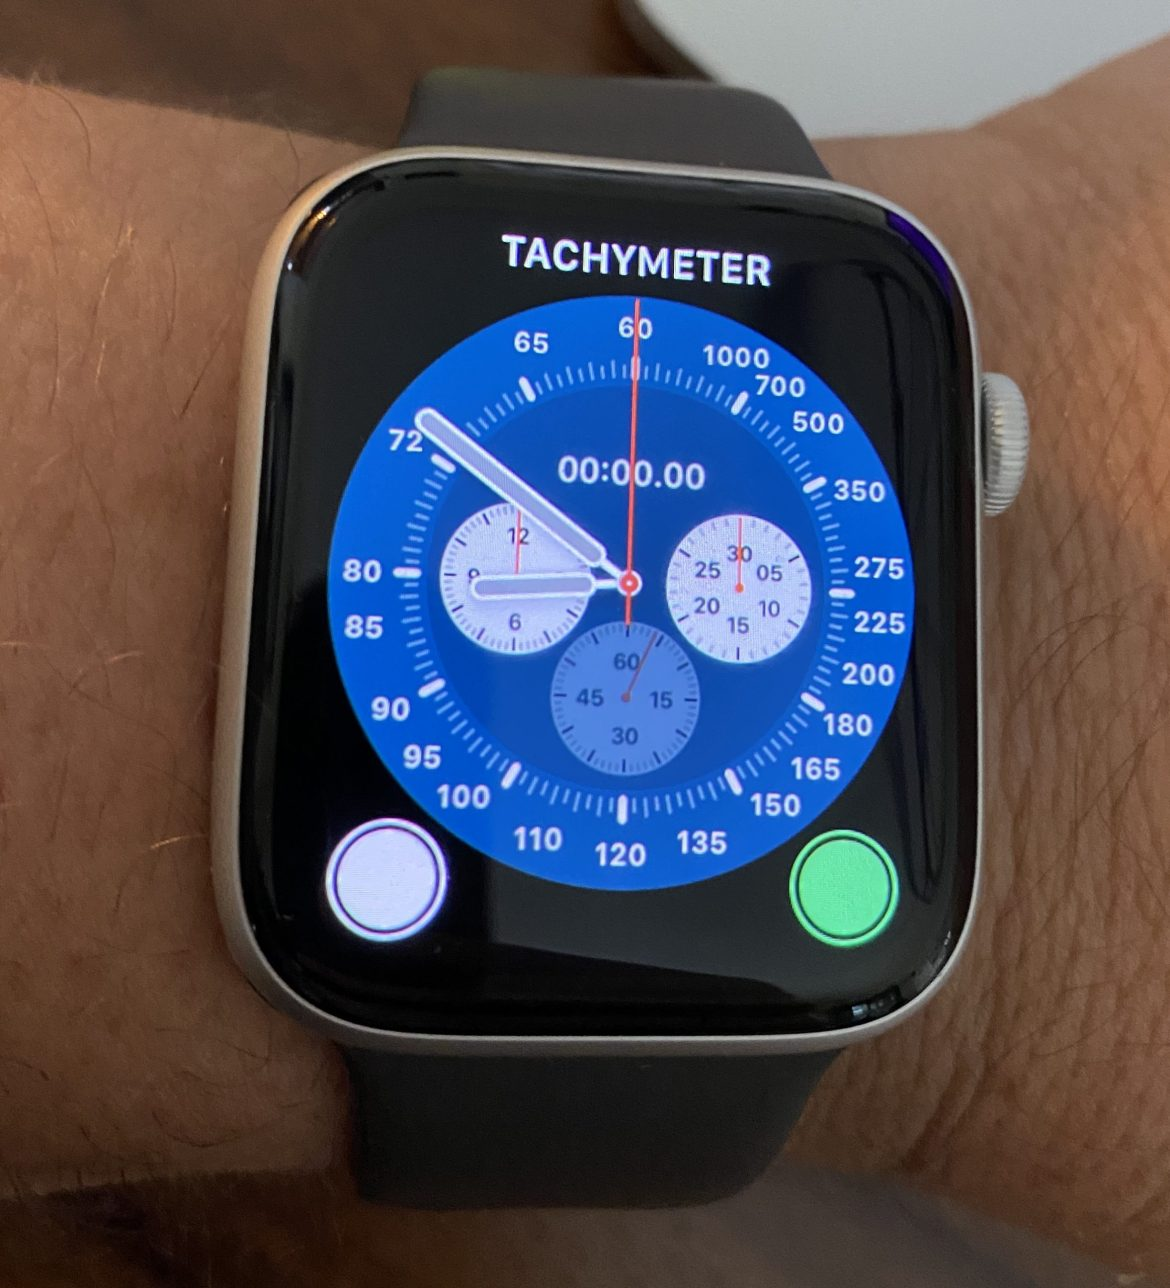 Apple brings back the tach